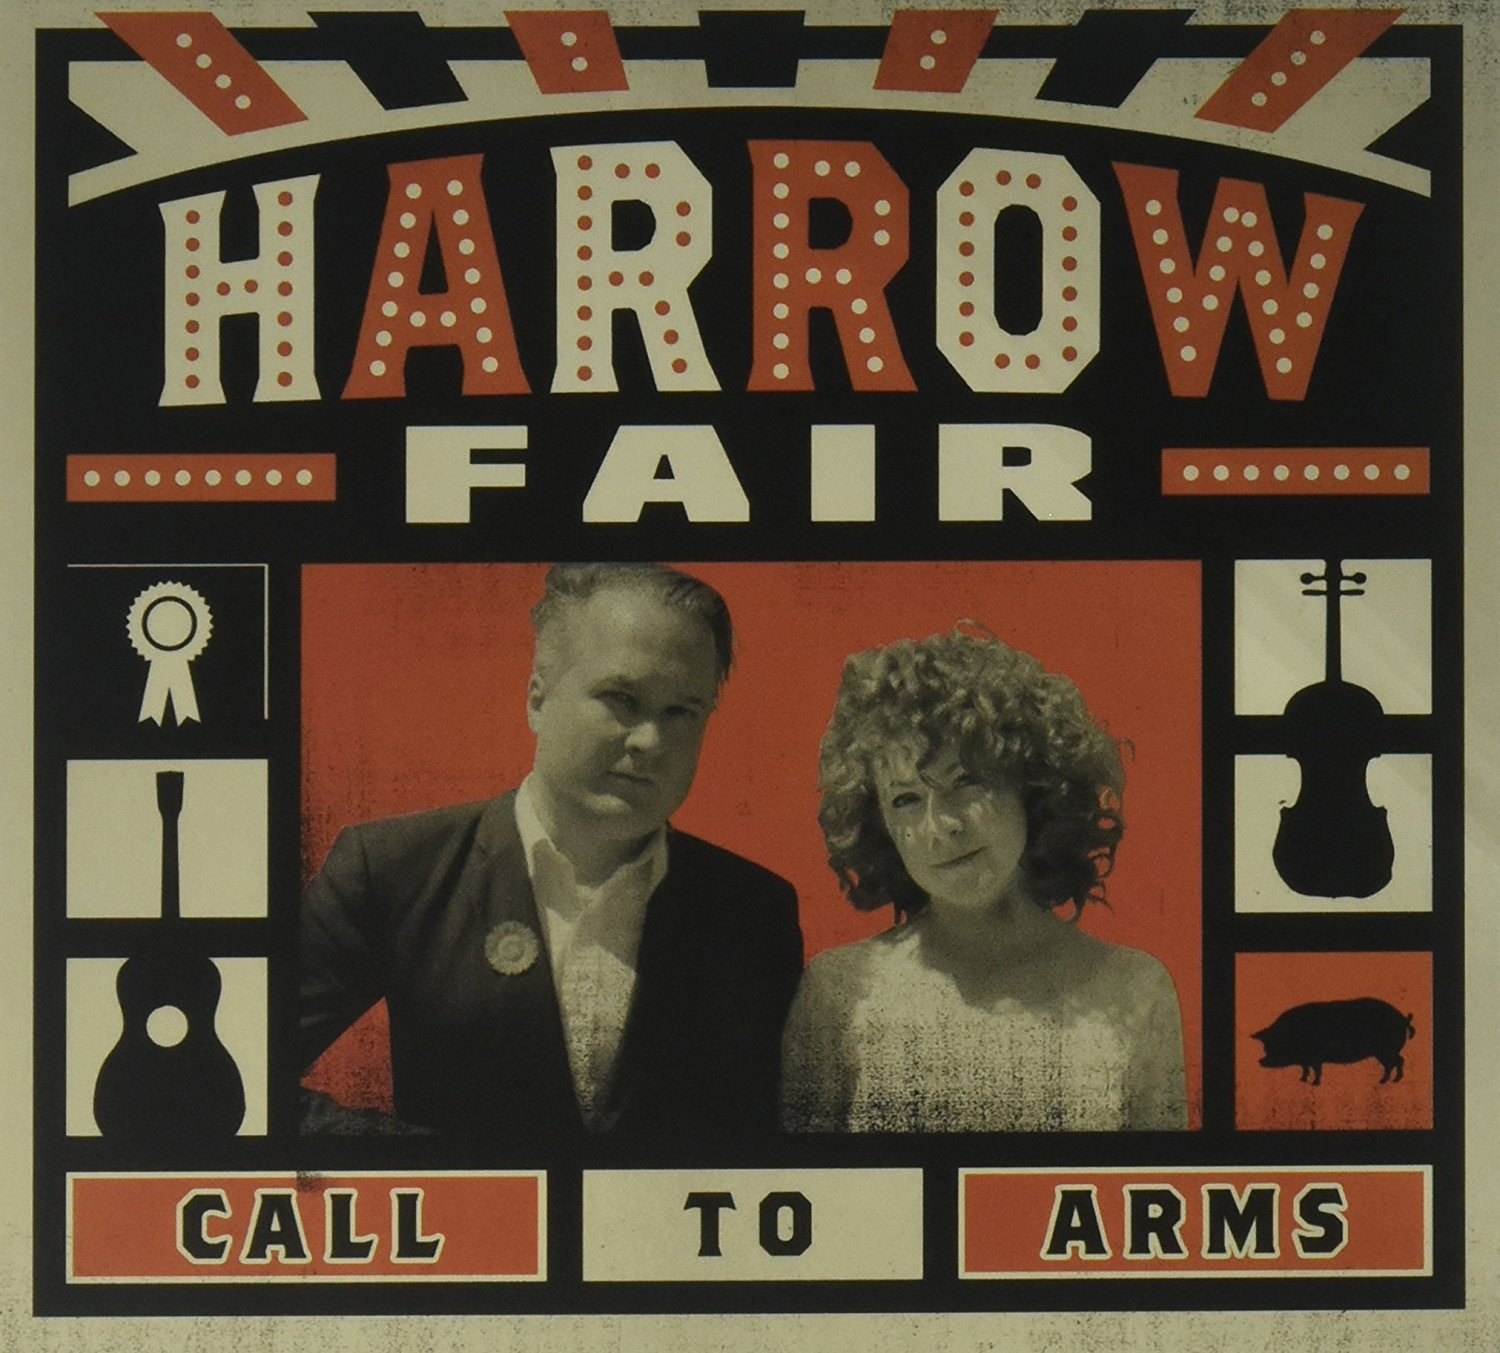 Call to Arms - Harrow Fair